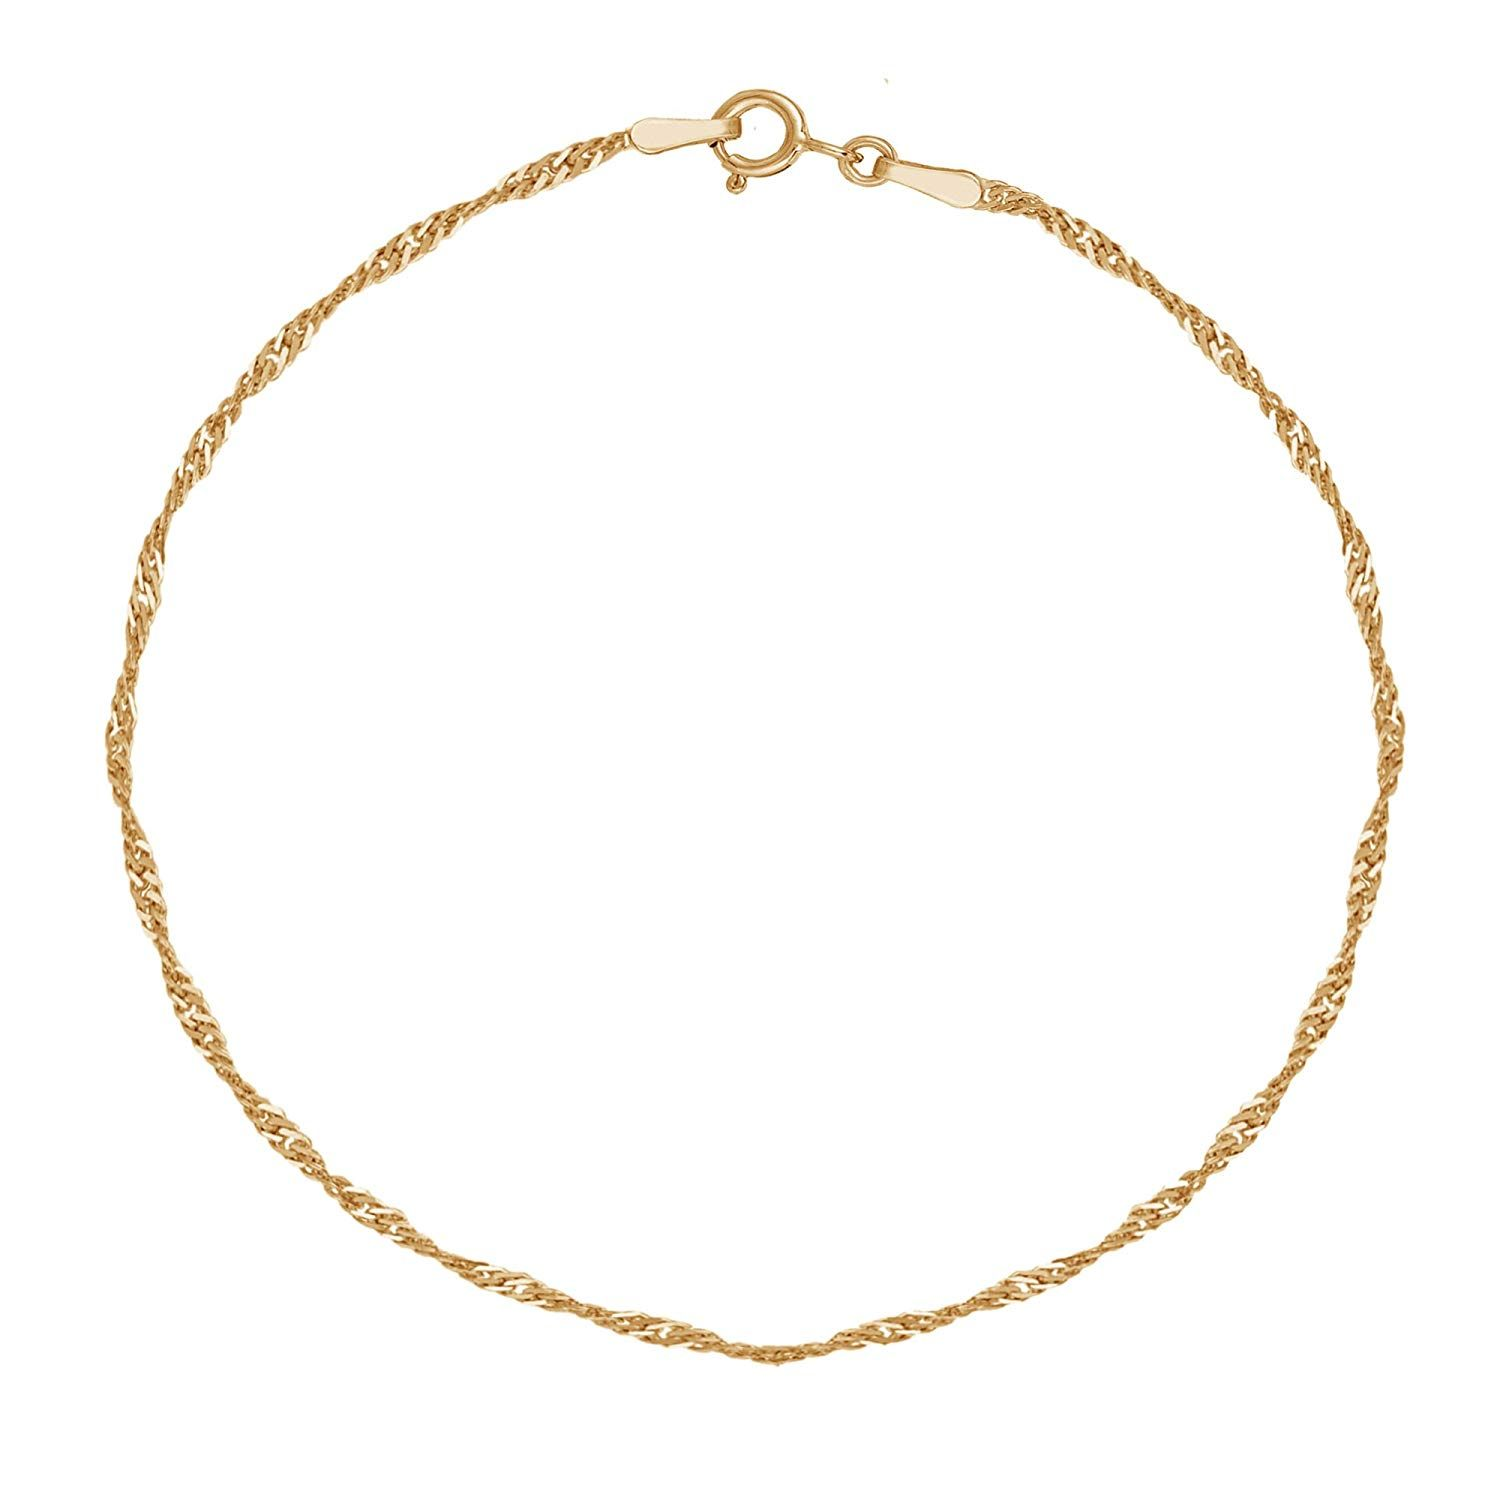 10k Yellow Gold Singapore Anklet 10 Inches Sincerely Hope You Love The Picture This Is An Affiliate Link Ankl Ankle Bracelets Rope Pendant Women Anklets